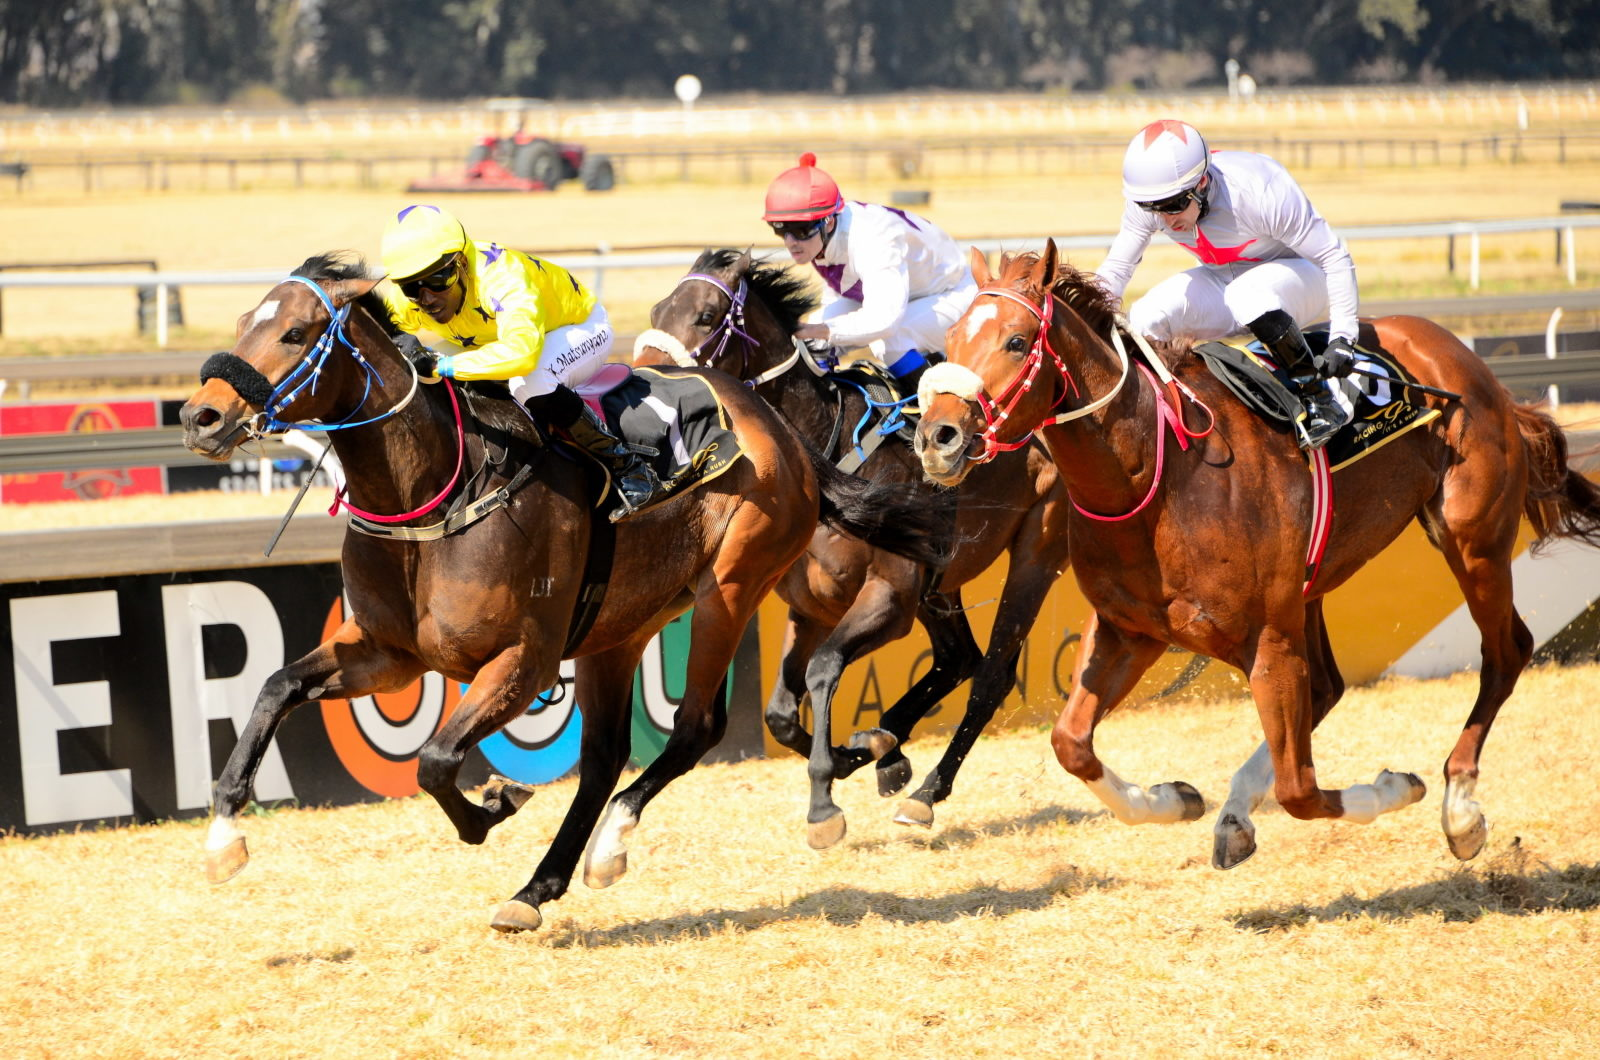 Deago Deluxe being ridden to victory at the Vaal by jockey Kabelo Matsuyane.